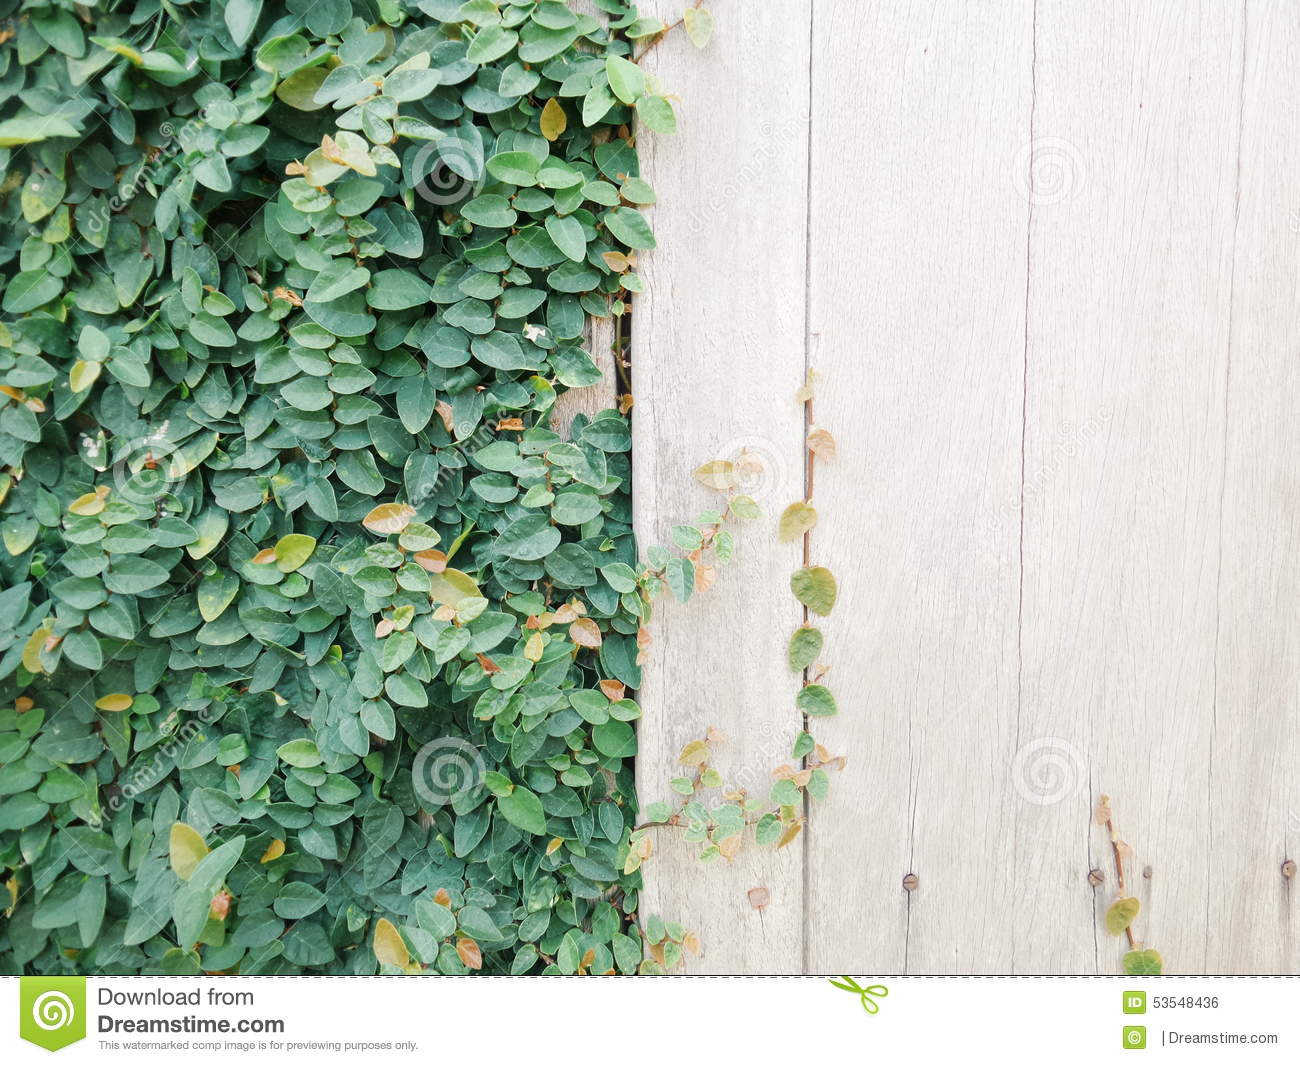 creeping rubber fig stock photo image 53548436